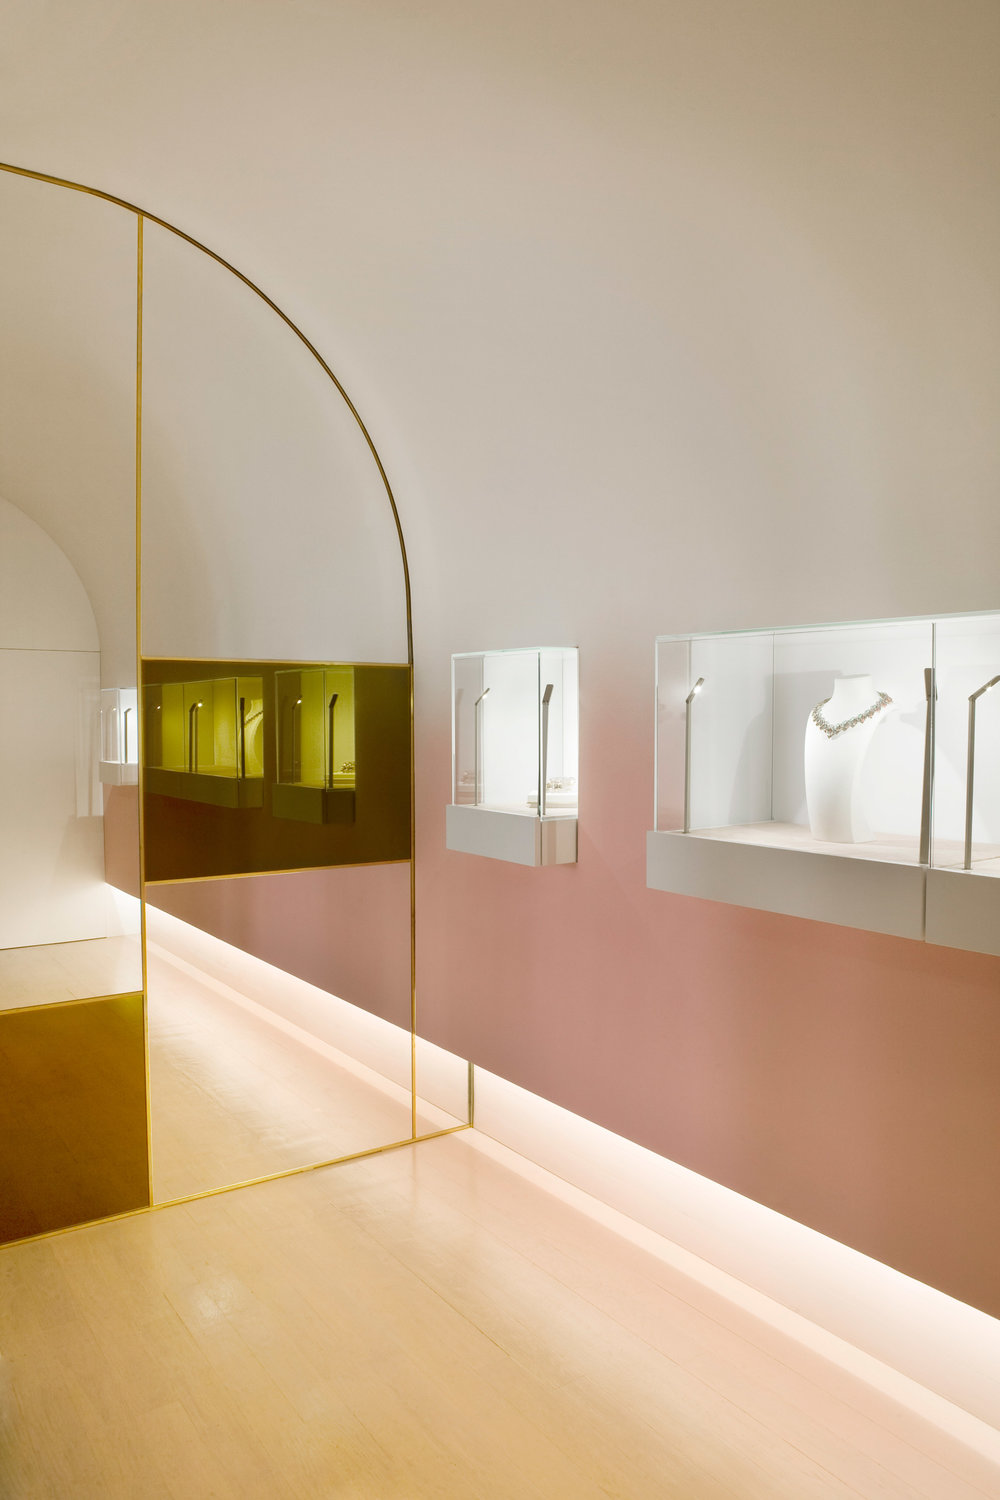 nuun-jewellery-shop-java-architectes-interiors-retail-paris-france_dezeen_2364_col_6.jpg